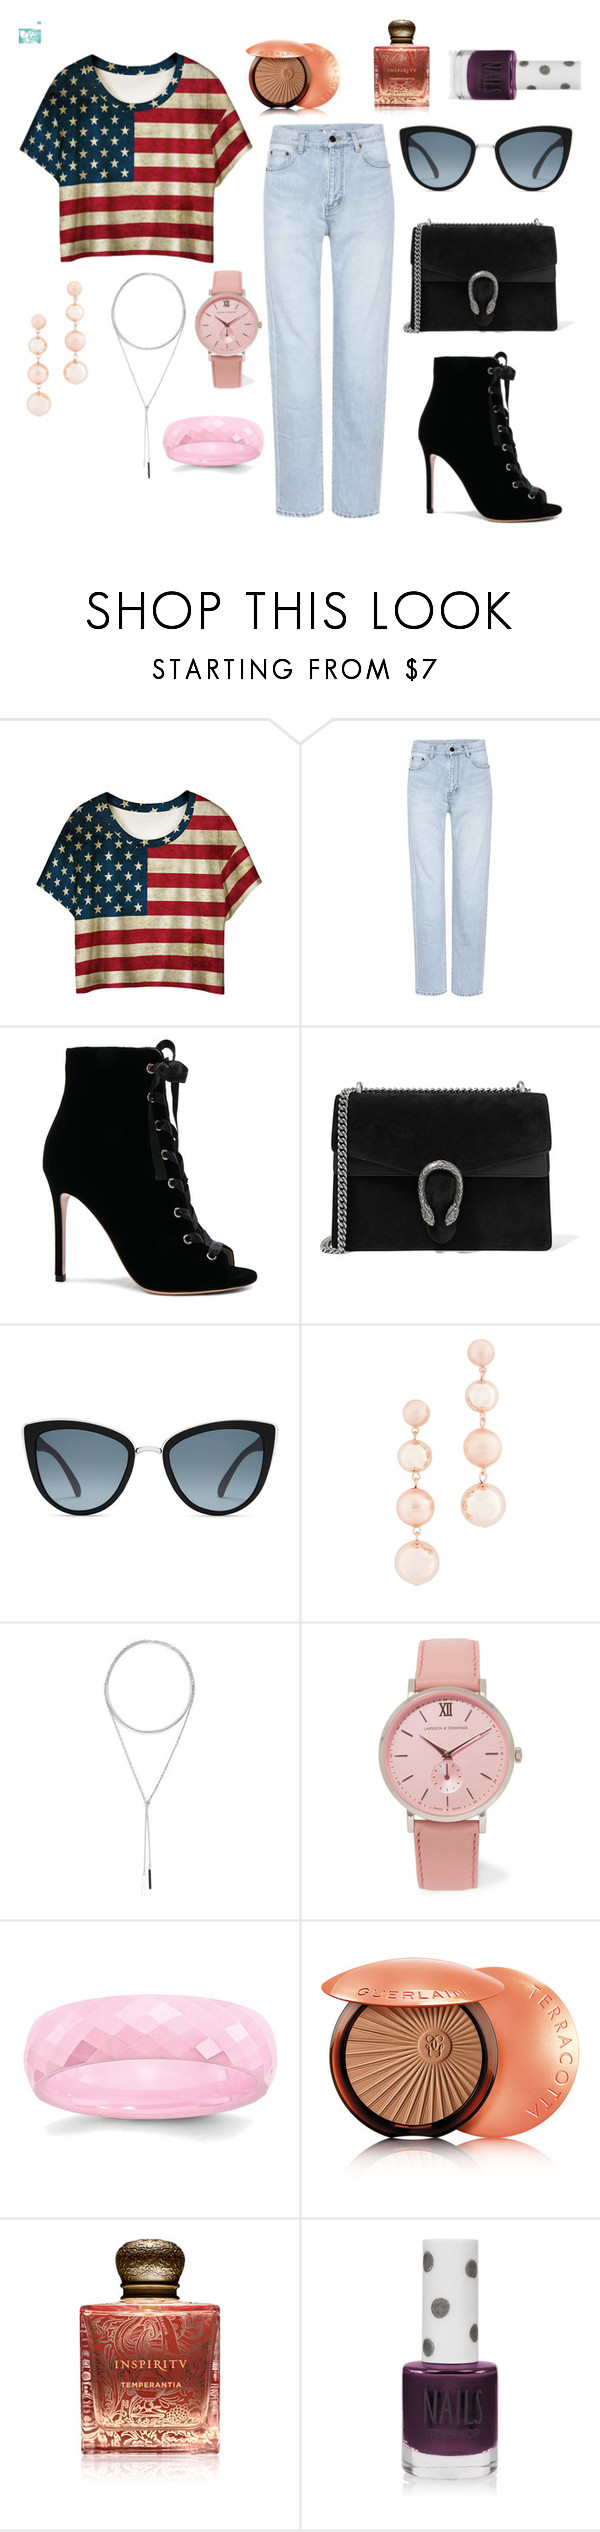 """""""Ootd - 2:58 A.M."""" by thebeauty26 ❤ liked on Polyvore featuring WithChic, Yves Saint Laurent, Gianvito Rossi, Gucci, Topshop, Rebecca Minkoff, W. Britt, Larsson & Jennings, Guerlain and Inspiritu"""